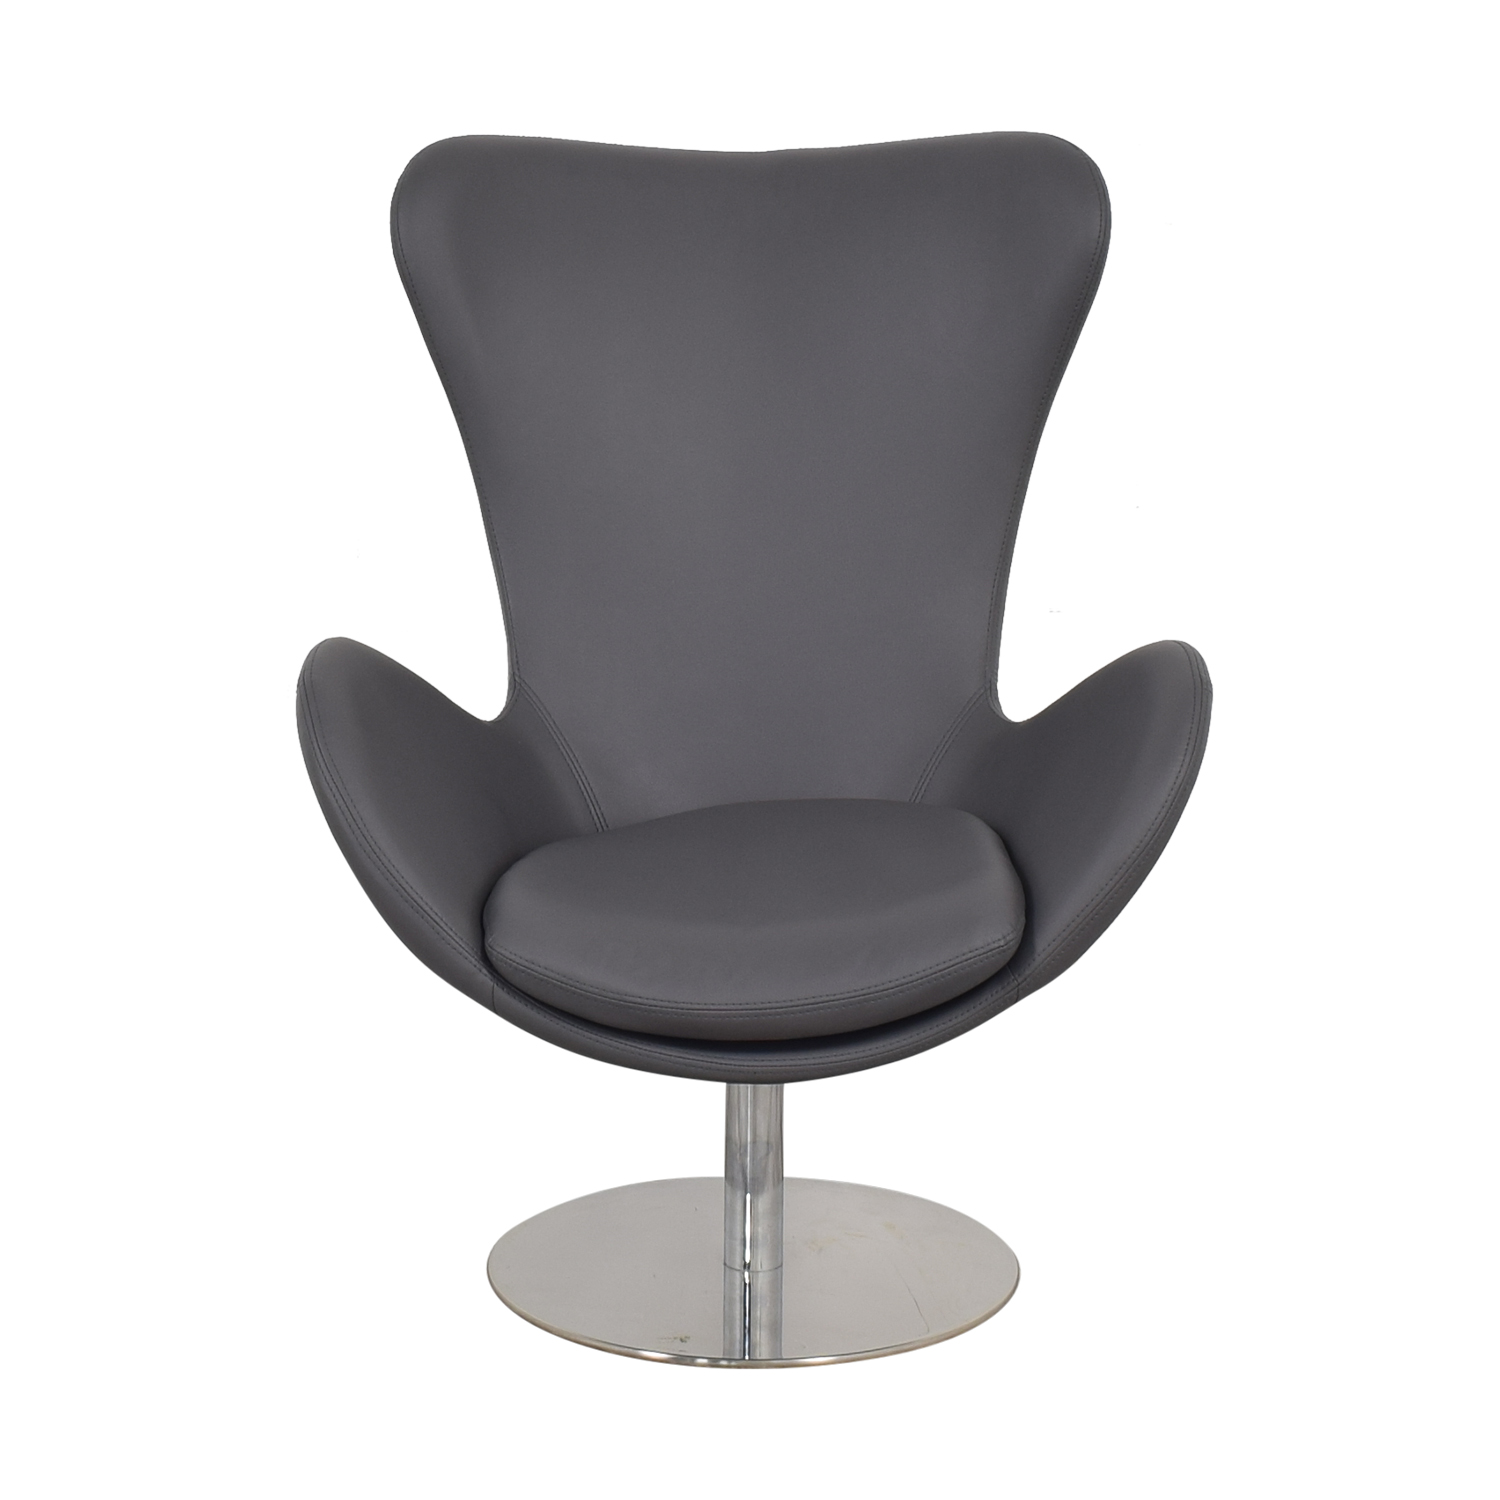 shop Modani Modani Modern Lounge Chair online